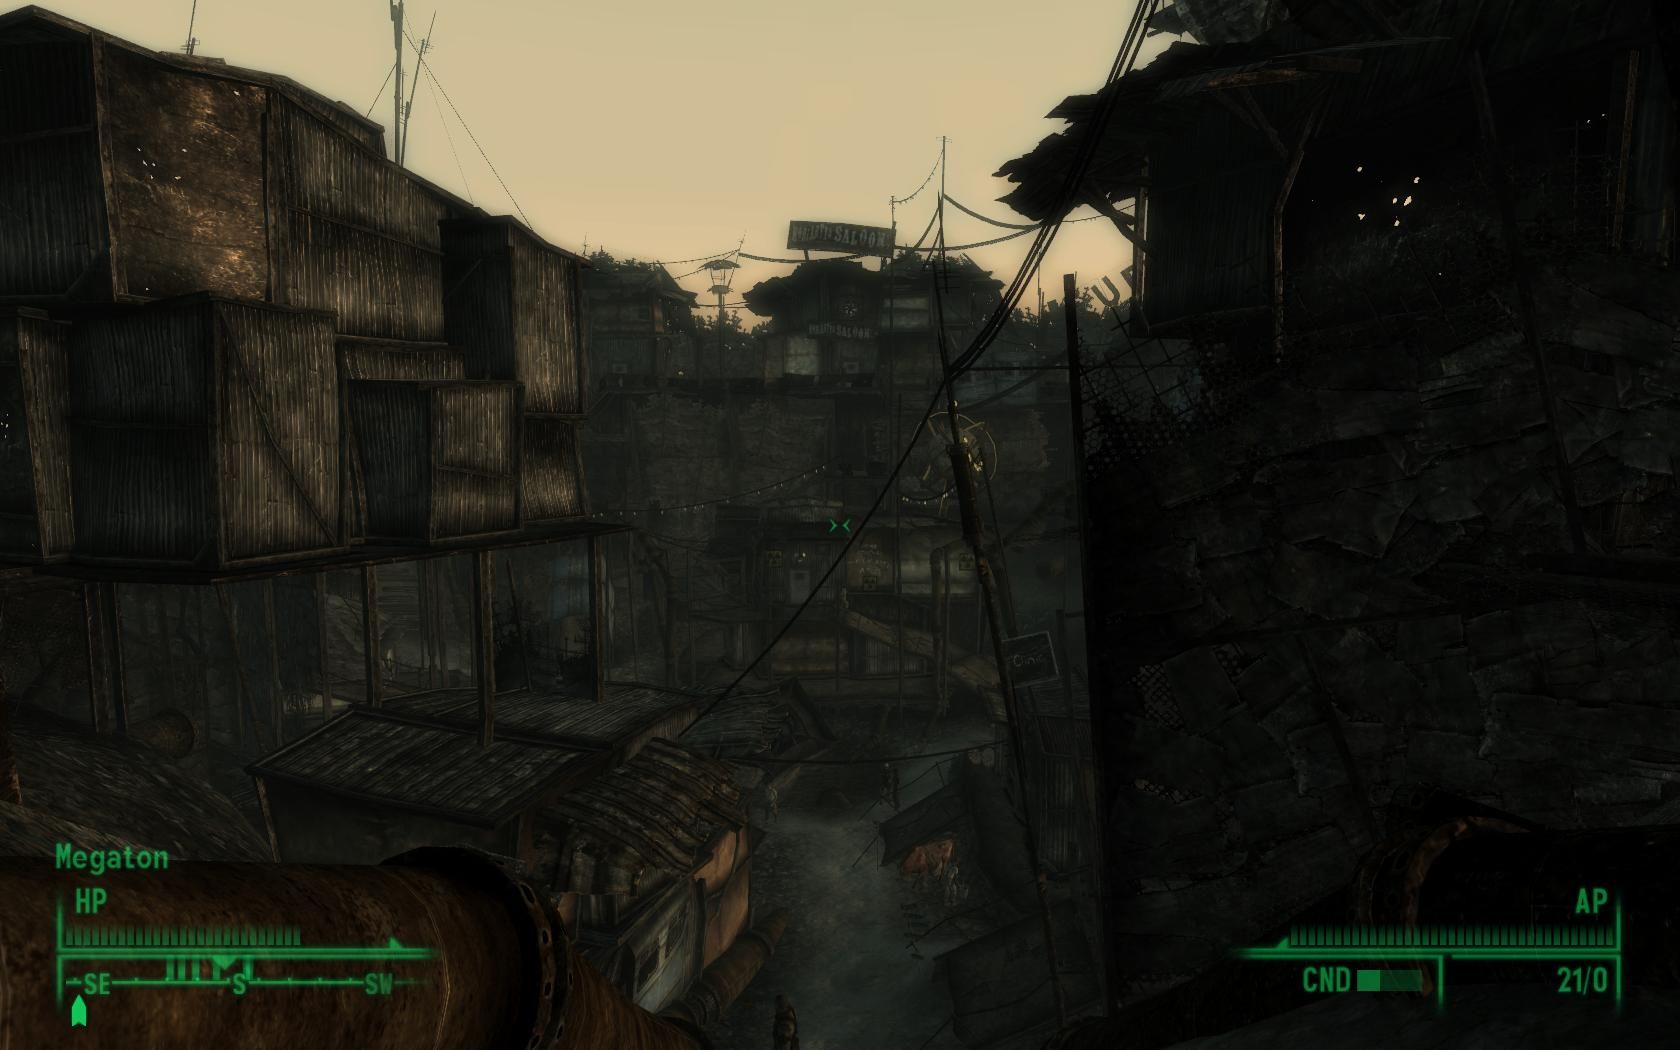 Fallout 3 Windows Megaton, a city built around a nuclear bomb.